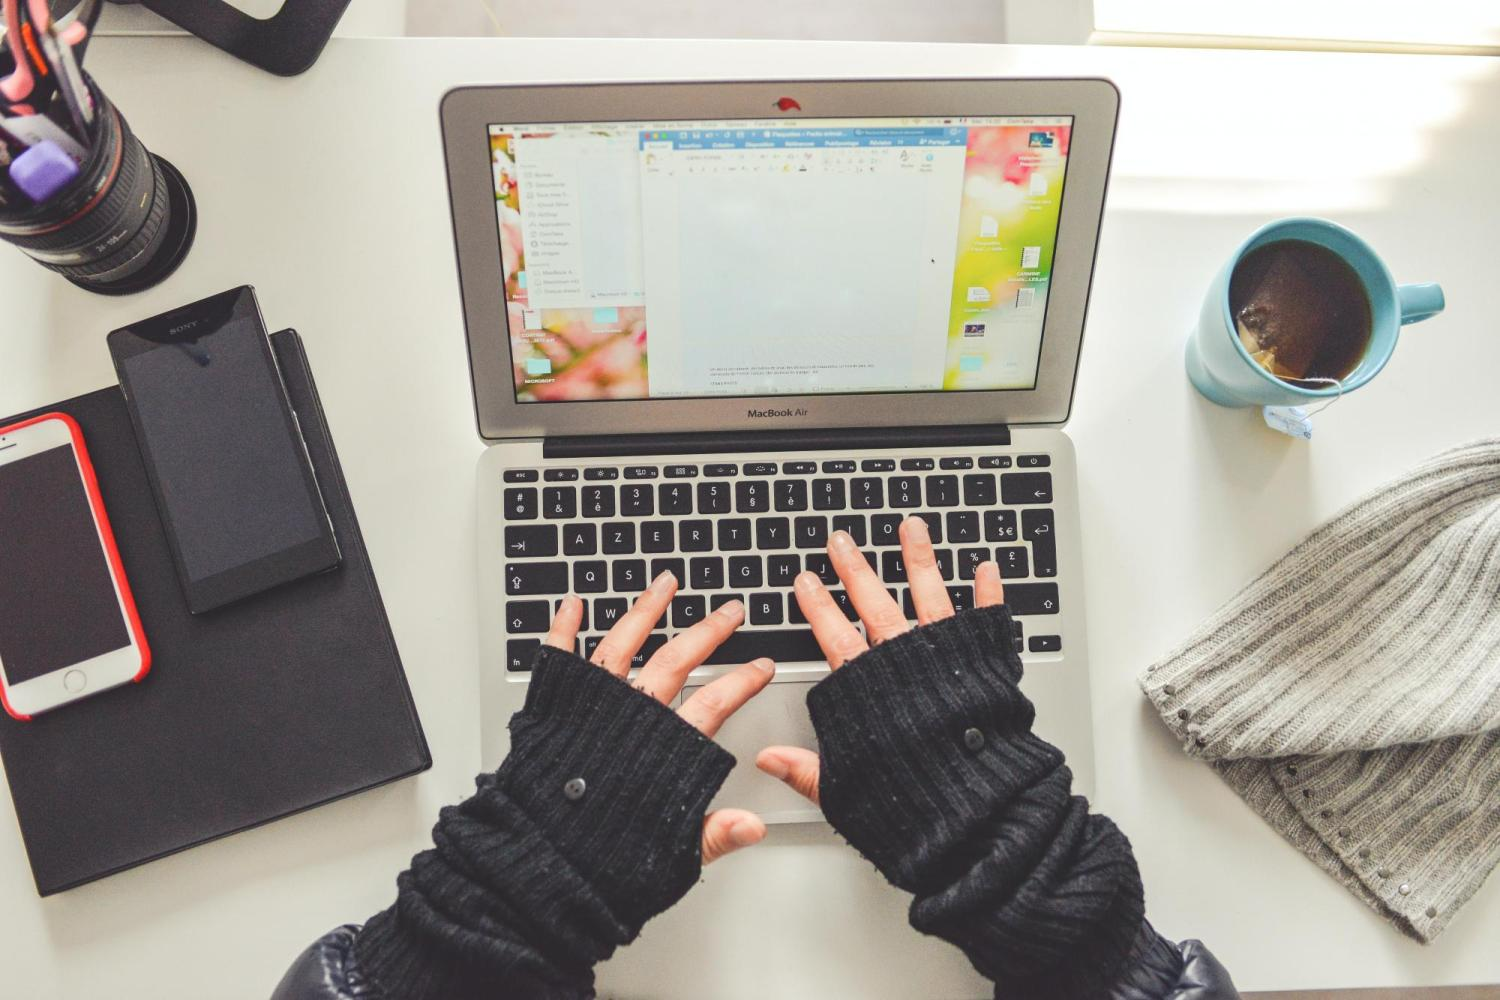 Gloved hands using a laptop next to woolen cap and hot beverage